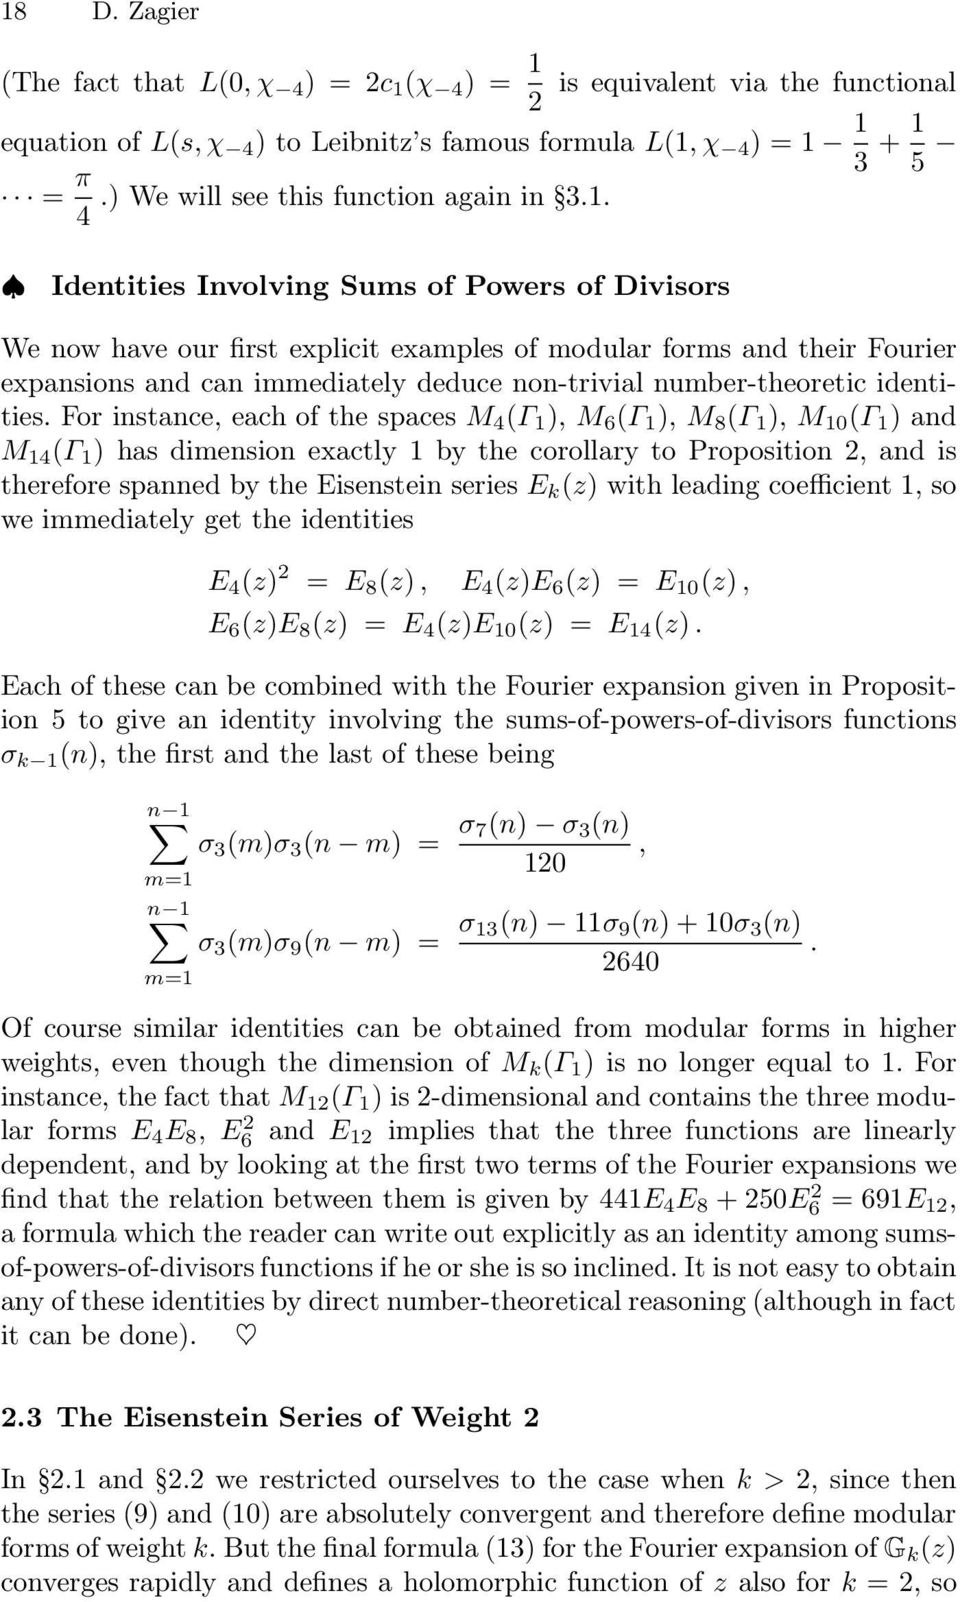 4 Identities Involving Sums of Powers of Divisors We now have our first explicit examples of modular forms and their Fourier expansions and can immediately deduce non-trivial number-theoretic